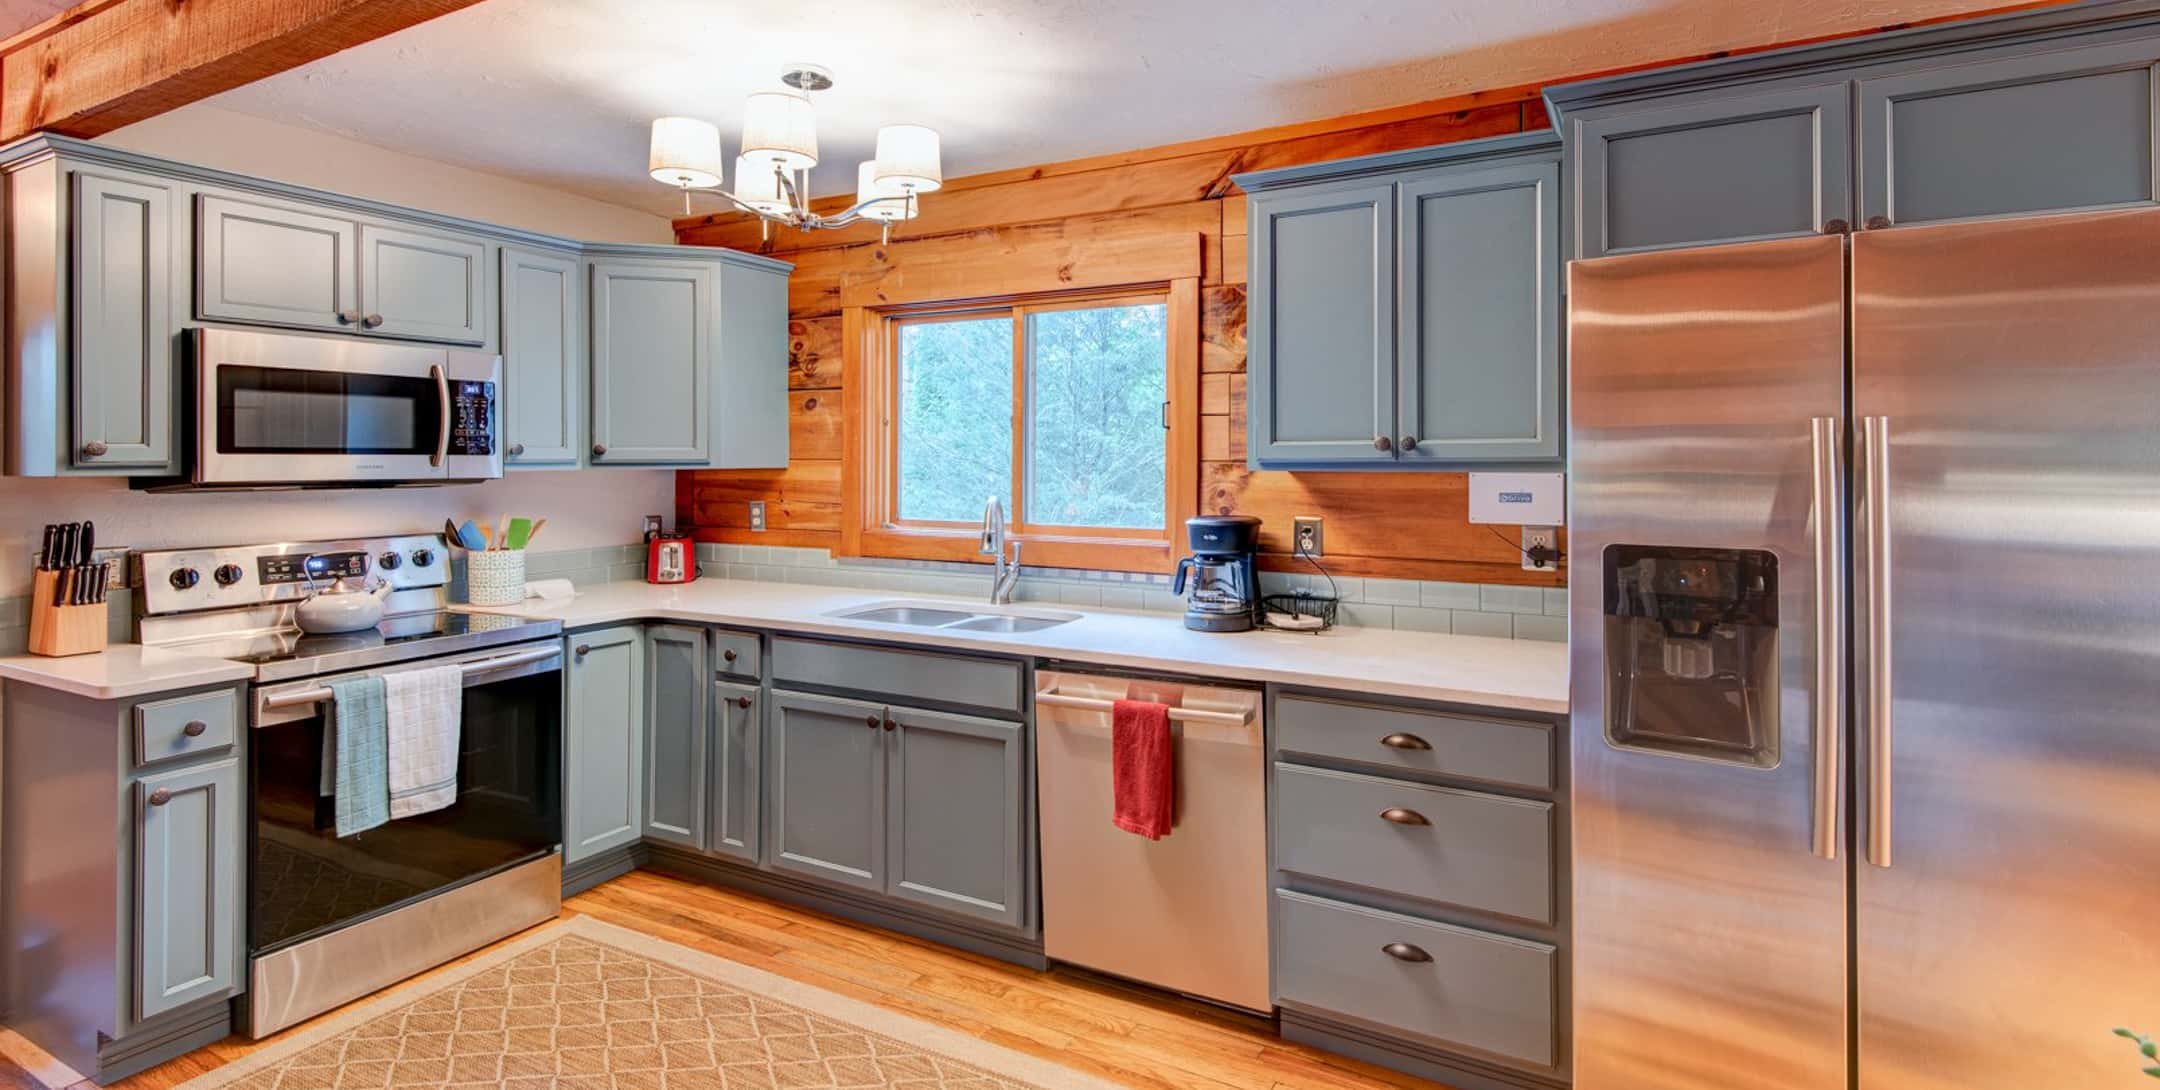 Full kitchen with range, dishwasher and hardwood floors in the Raspberry Hill Cabin